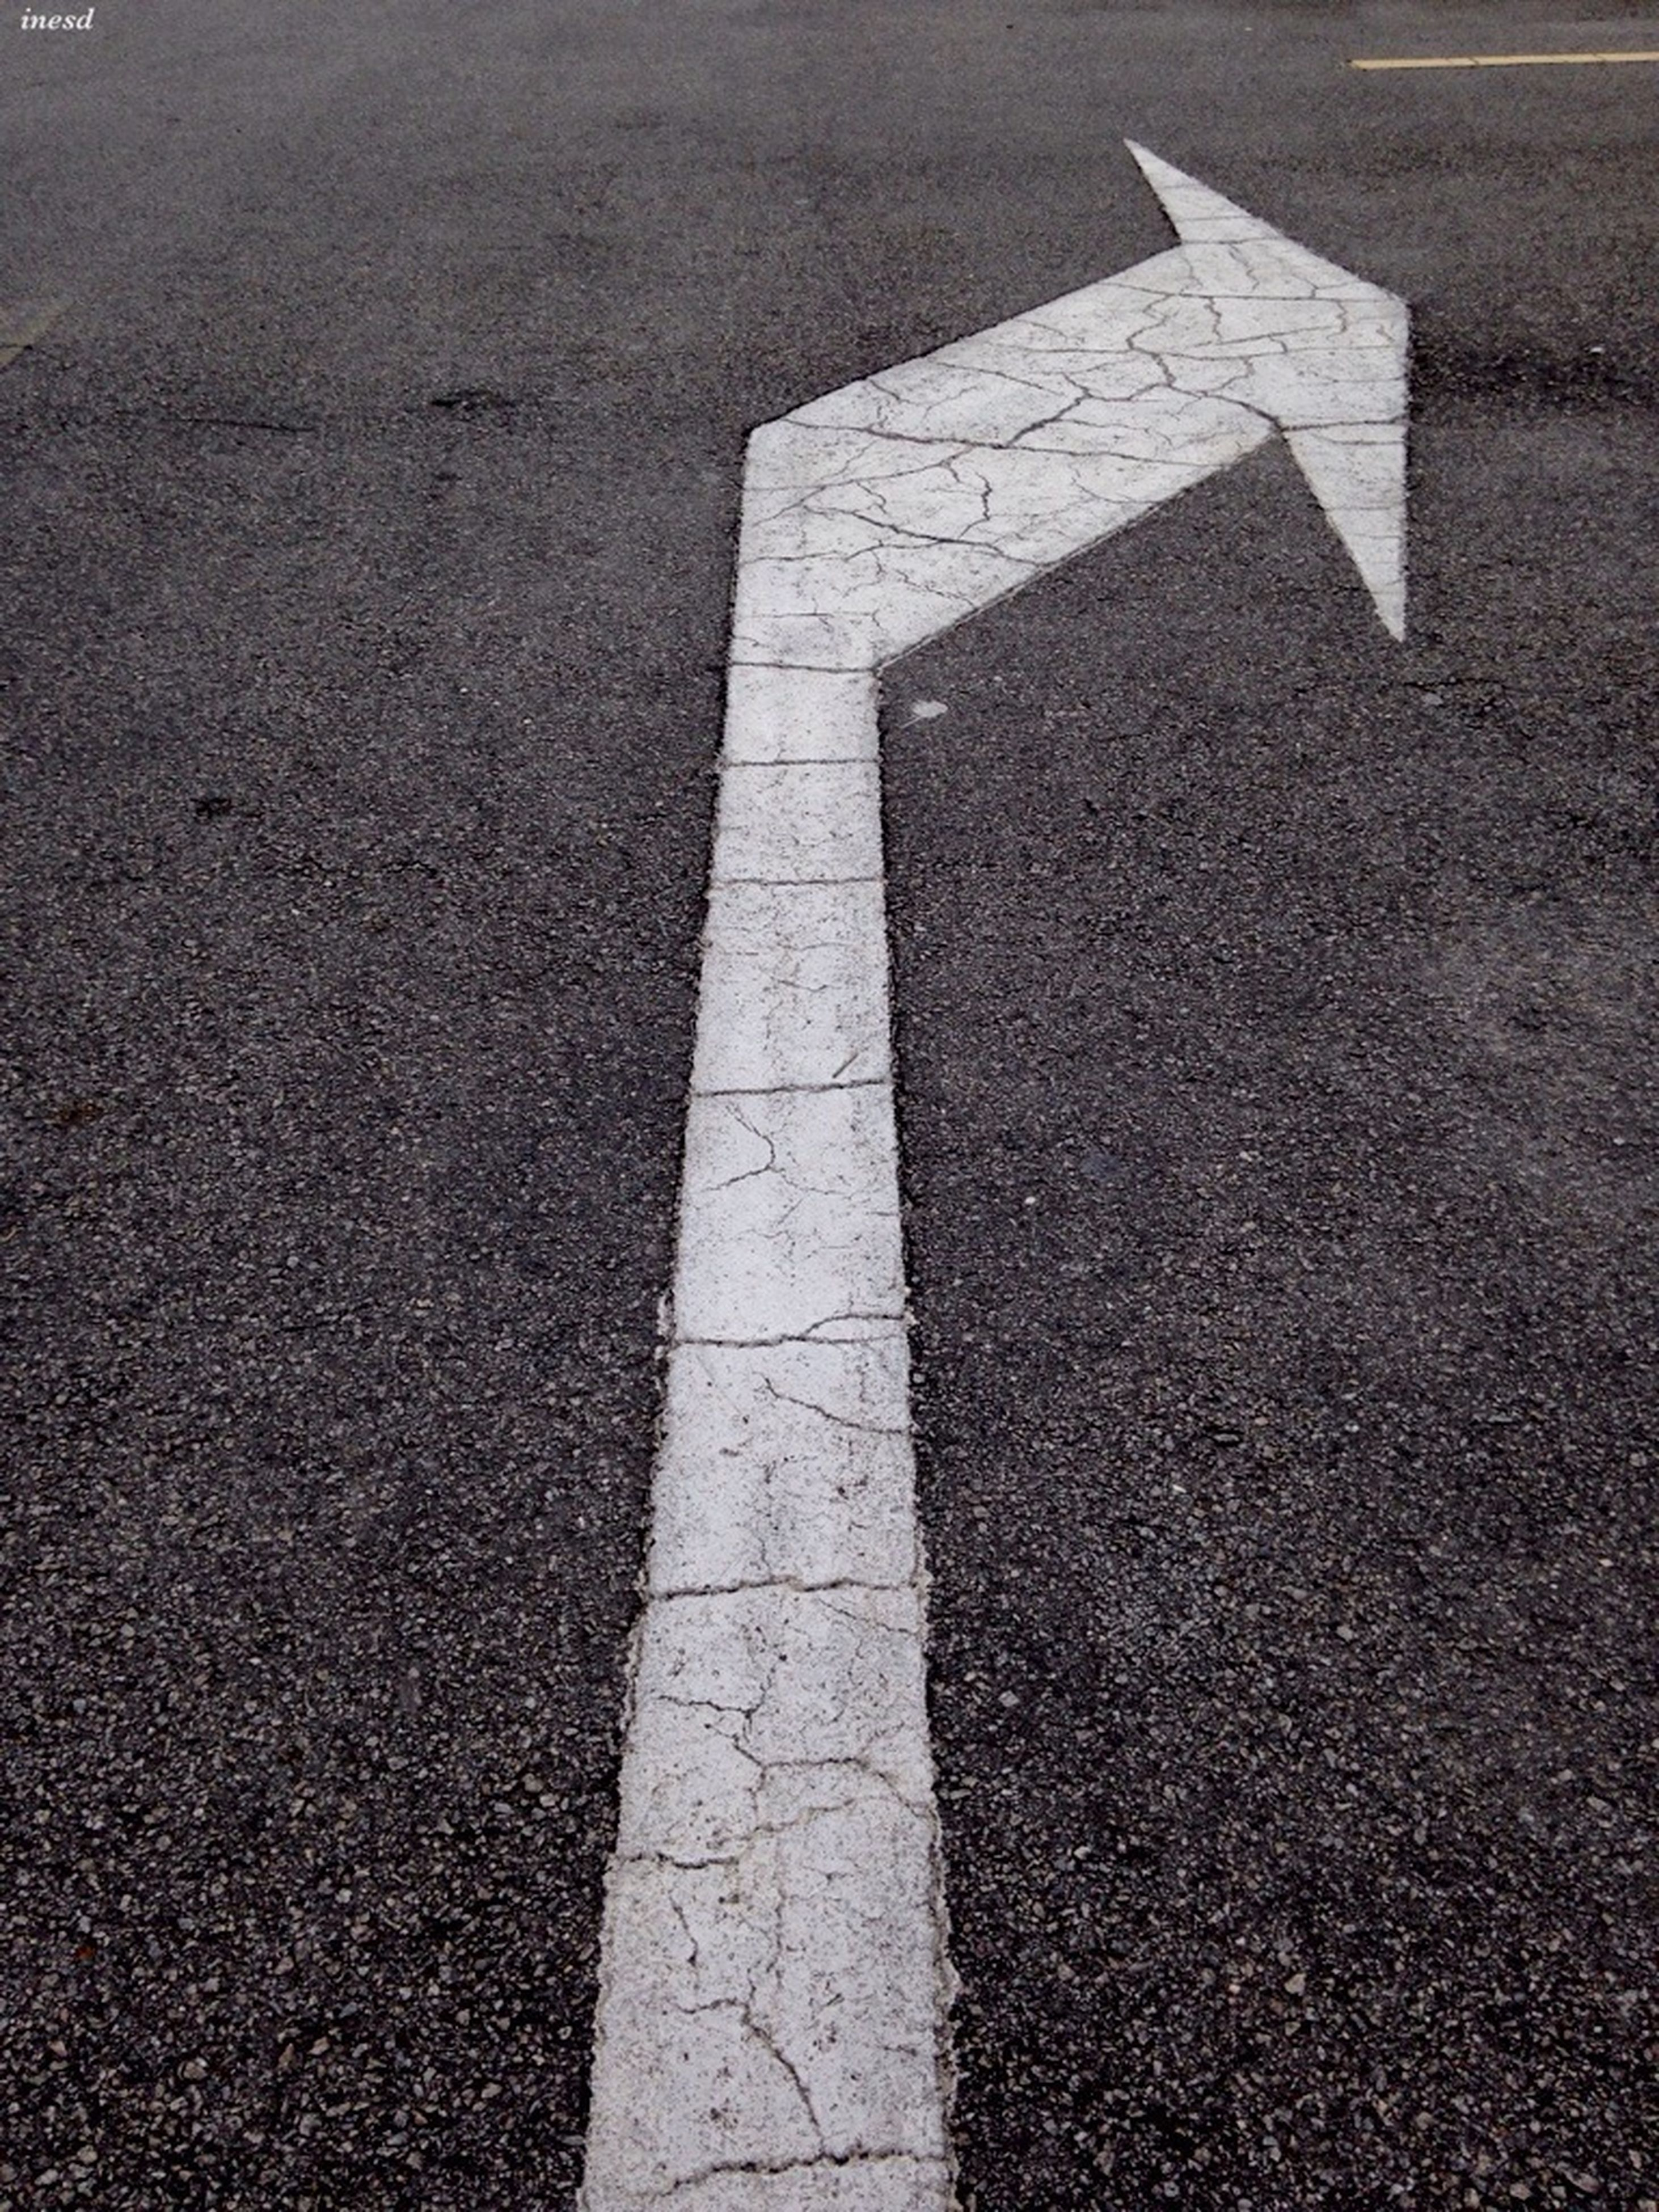 road marking, asphalt, road, street, transportation, high angle view, the way forward, guidance, textured, direction, arrow symbol, outdoors, day, no people, shadow, sunlight, diminishing perspective, vanishing point, white color, directional sign